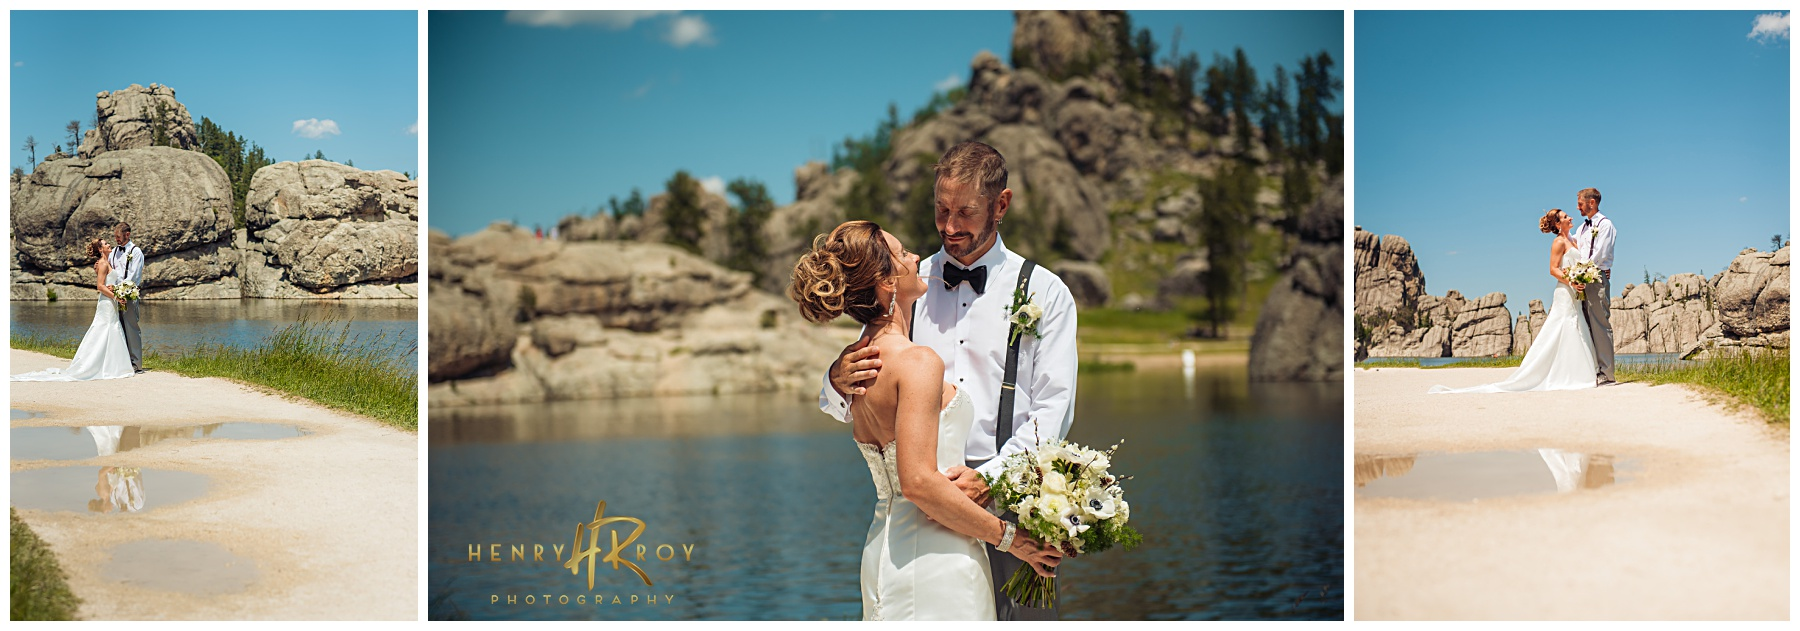 Wedding Photographer024.jpg